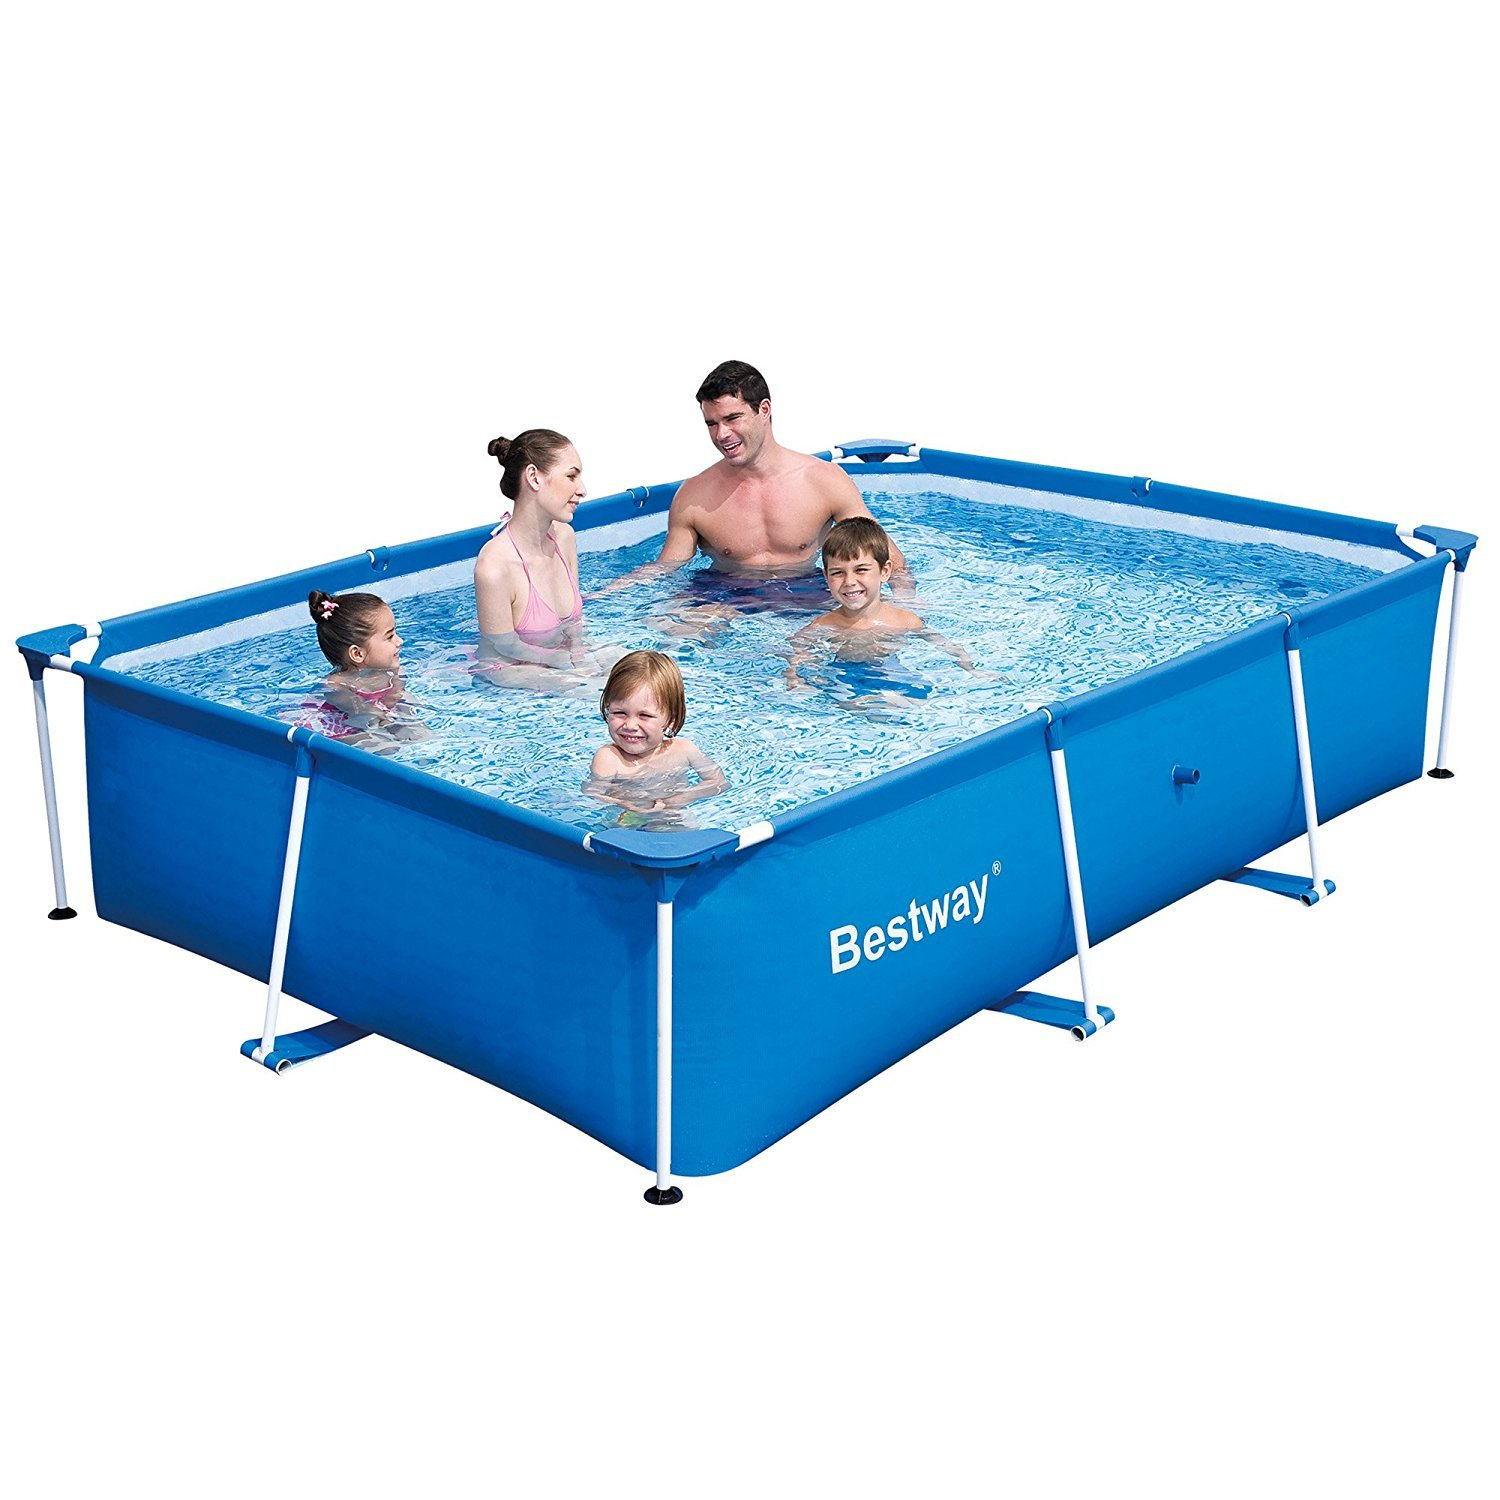 Bestway - Best above ground pool for kids